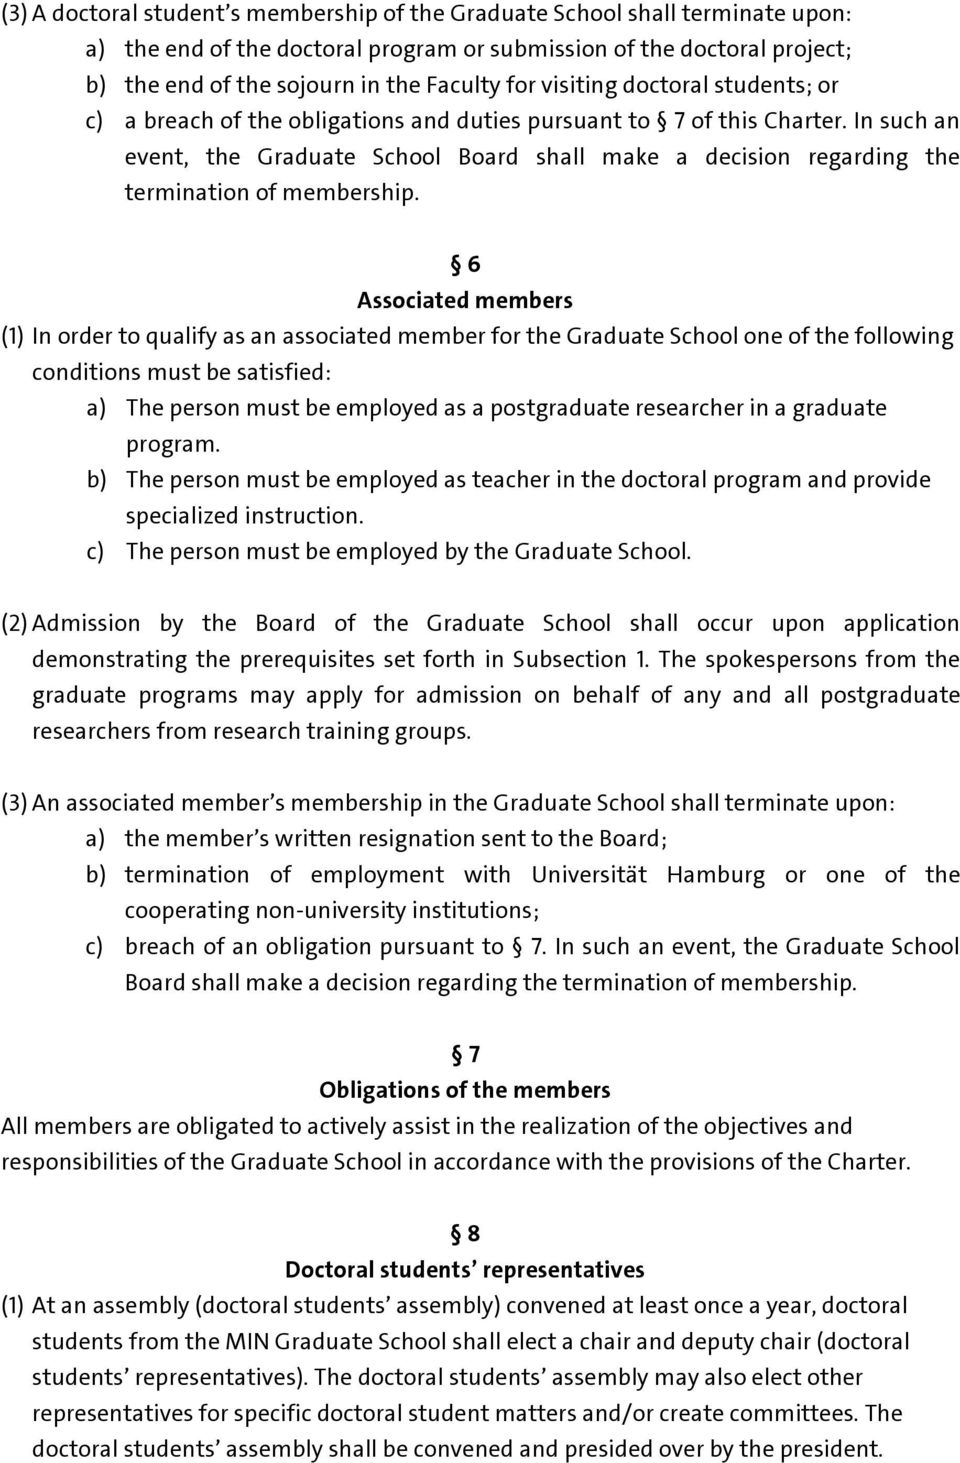 In such an event, the Graduate School Board shall make a decision regarding the termination of membership.